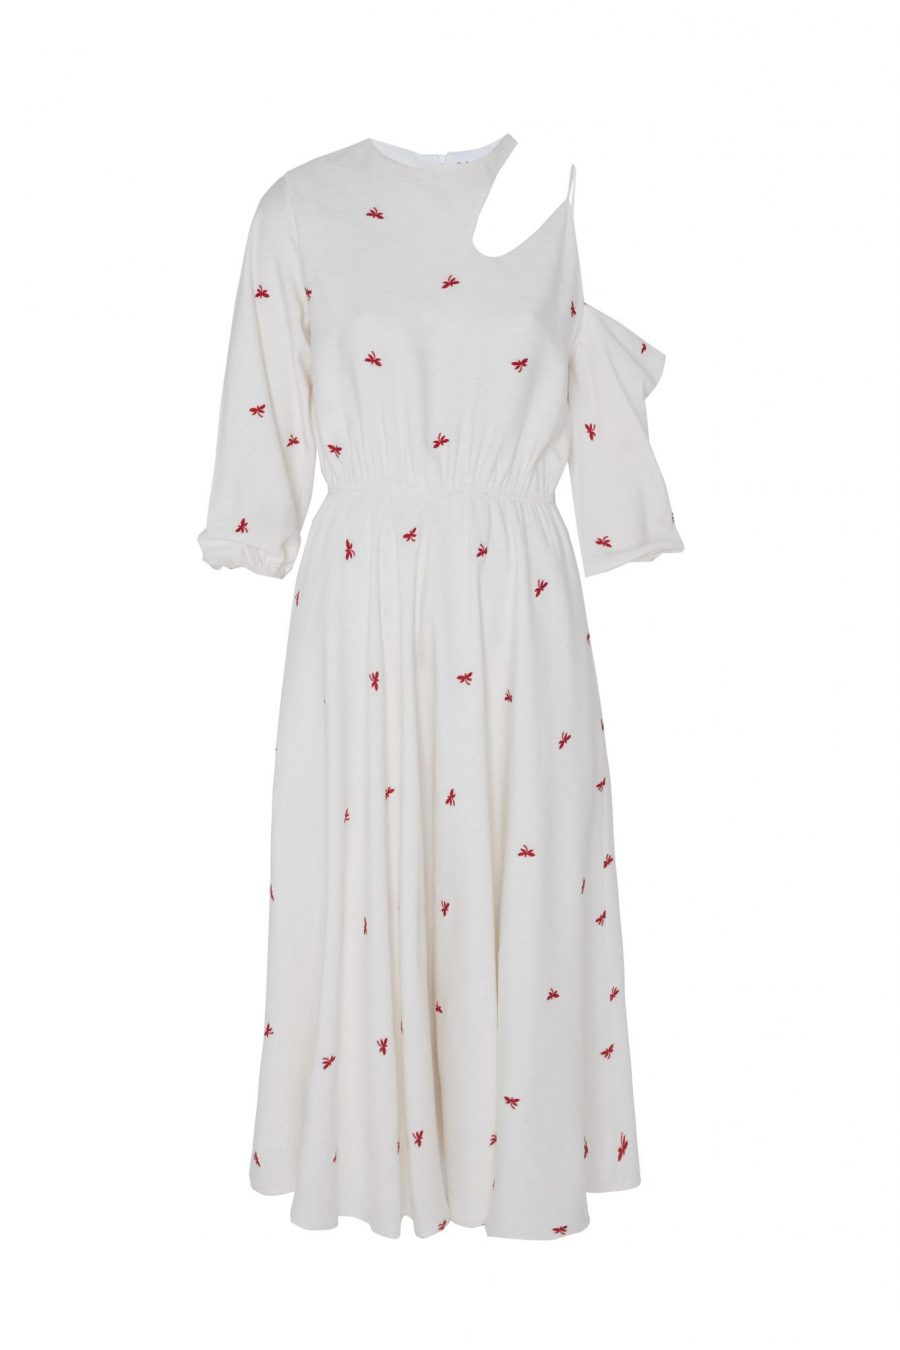 Cut out dress with Embroidery